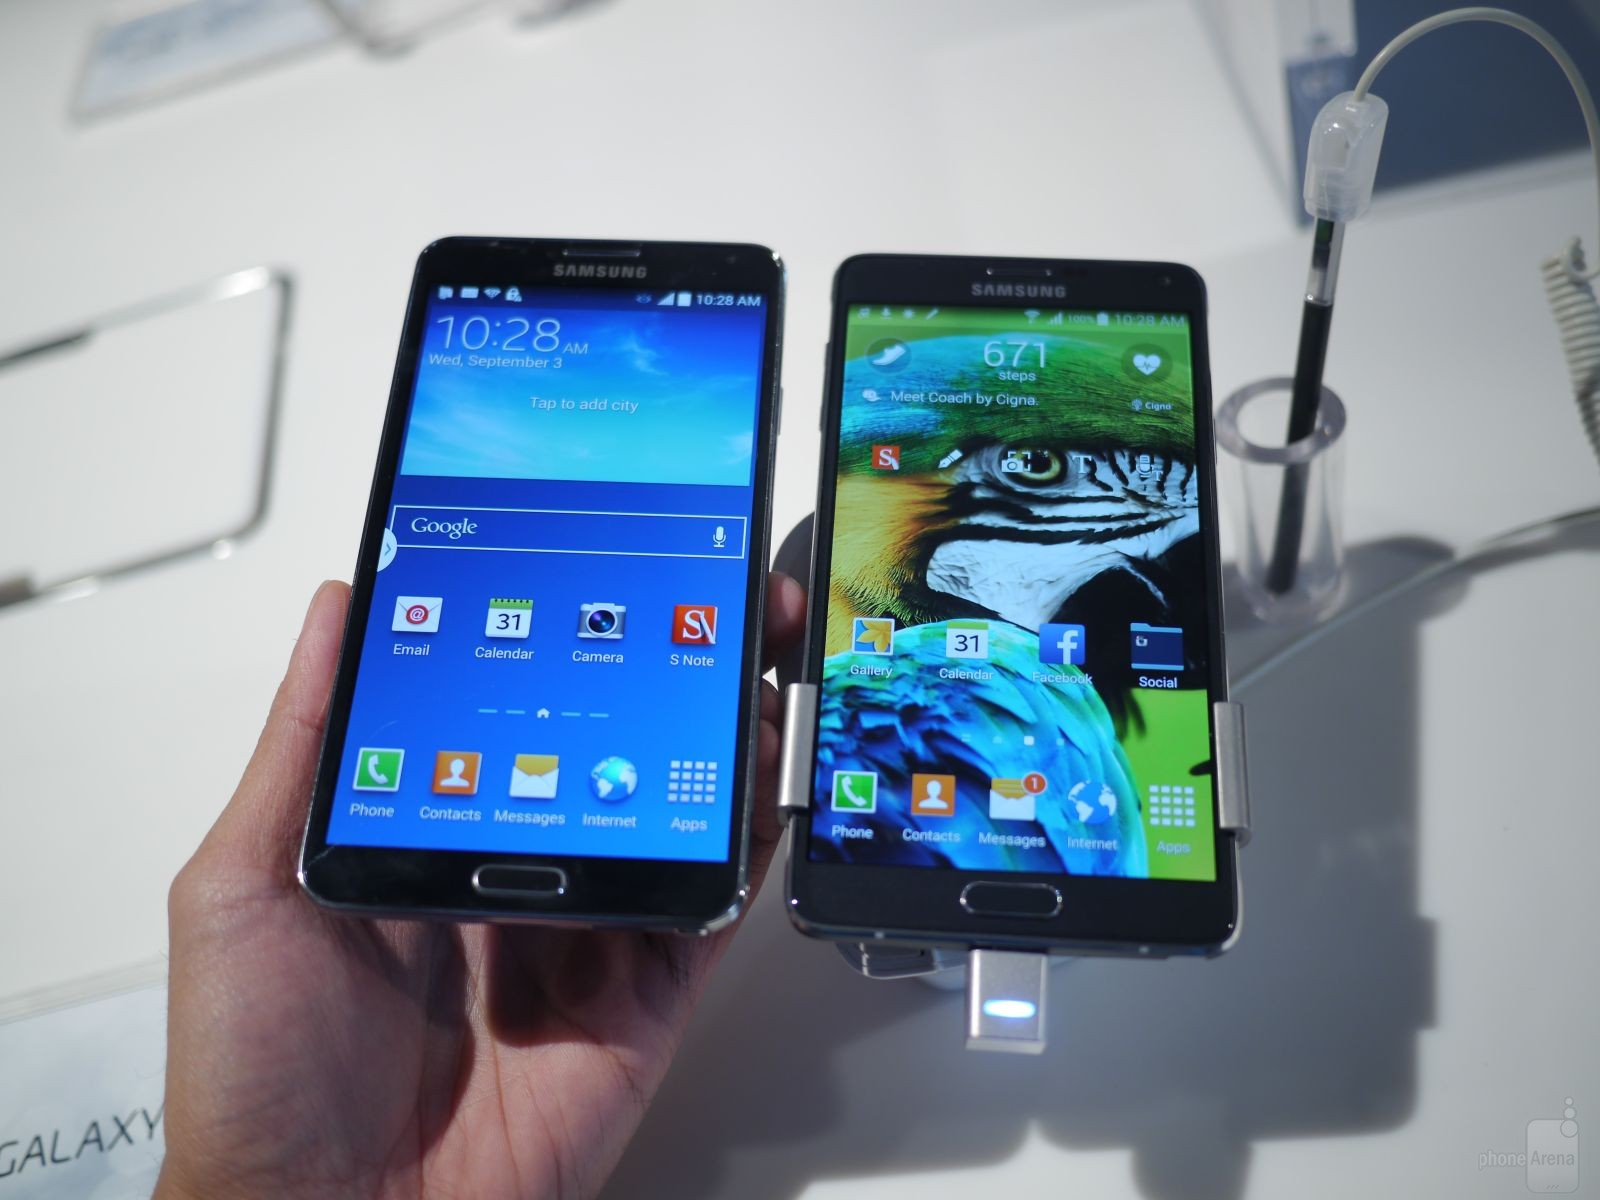 Galaxy Note 4 vs Galaxy Note 3